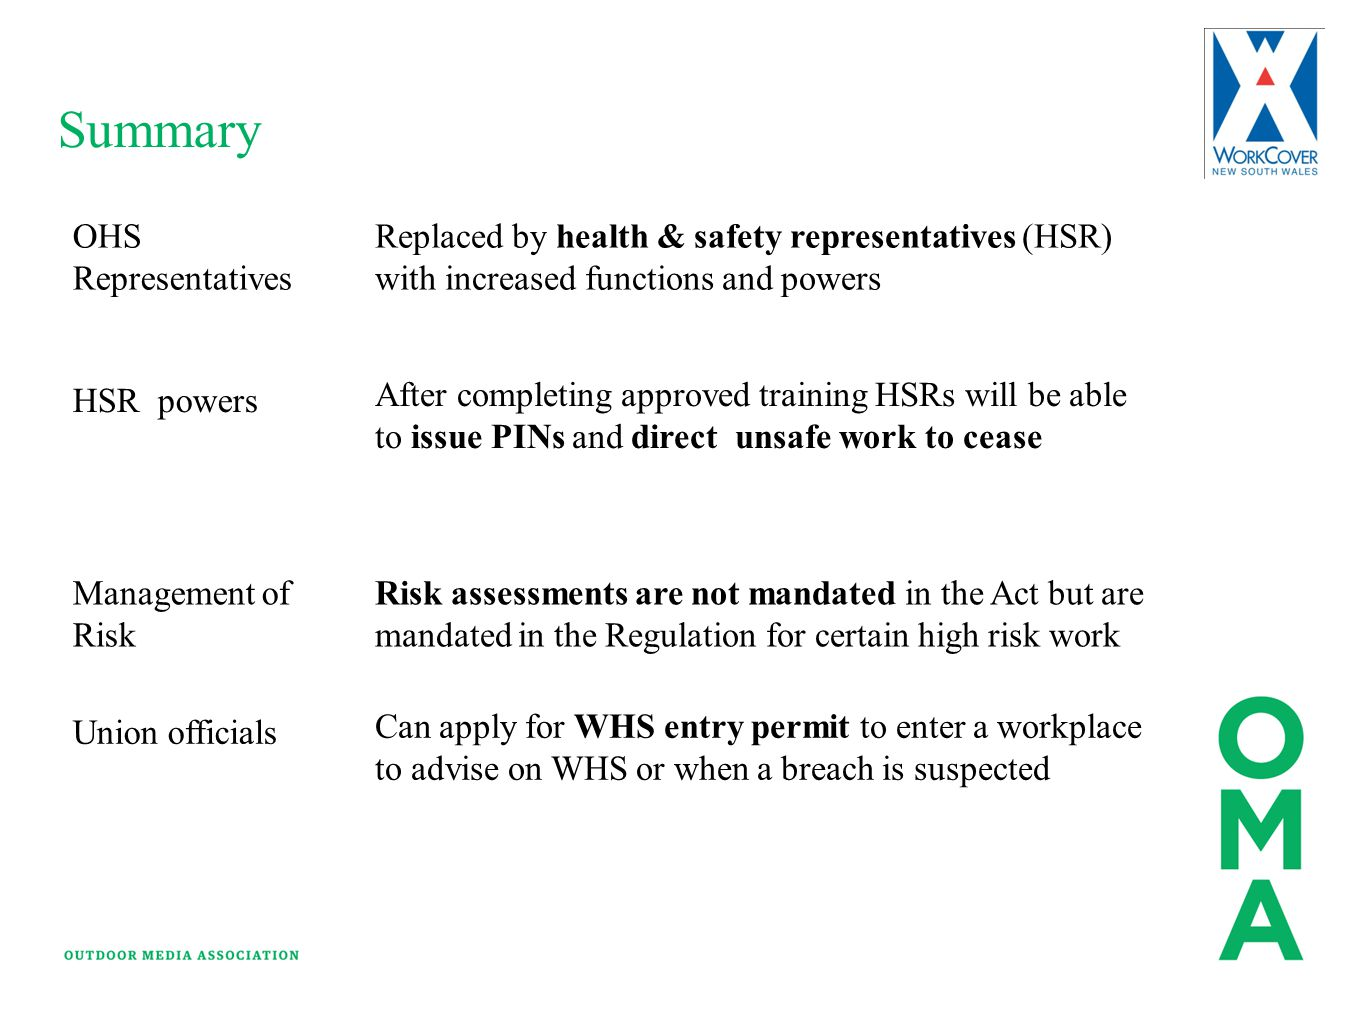 Summary OHS Representatives Replaced by health & safety representatives (HSR) with increased functions and powers HSR powers After completing approved